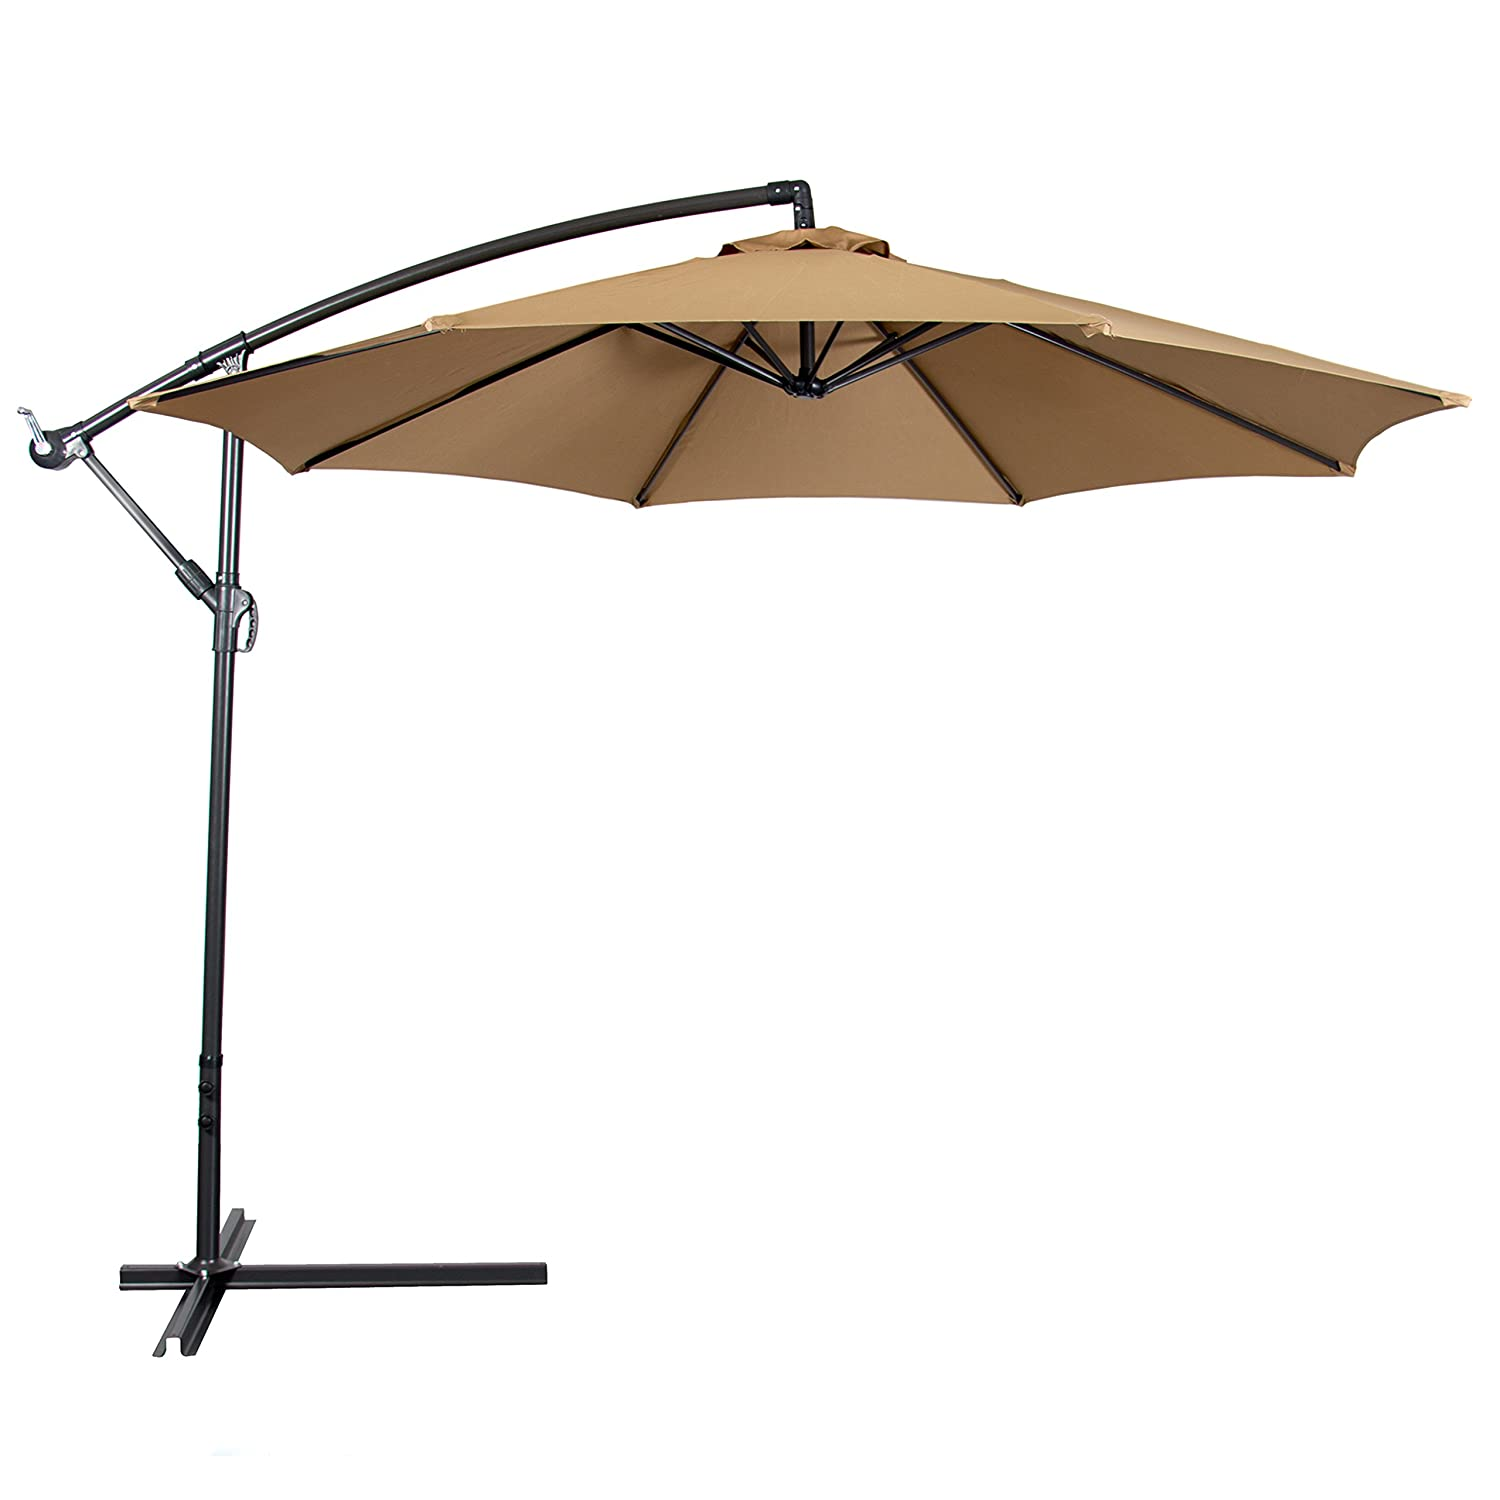 Nice Amazon.com : Best Choice Products Patio Umbrella Offset 10u0027 Hanging Umbrella  Outdoor Market Umbrella Tan New : Garden U0026 Outdoor